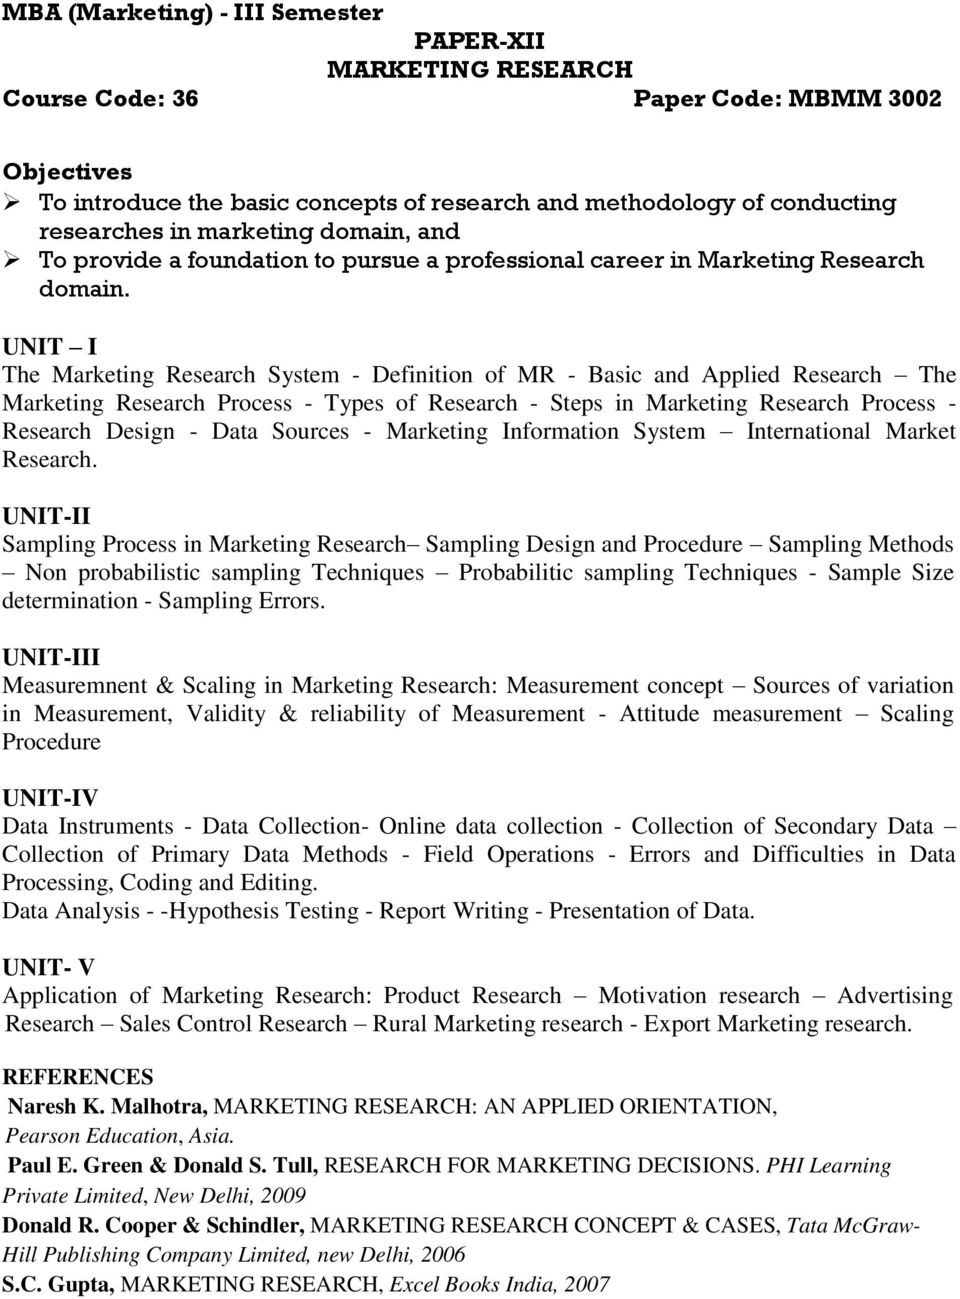 UNIT I The Marketing Research System - Definition of MR - Basic and Applied Research The Marketing Research Process - Types of Research - Steps in Marketing Research Process - Research Design - Data